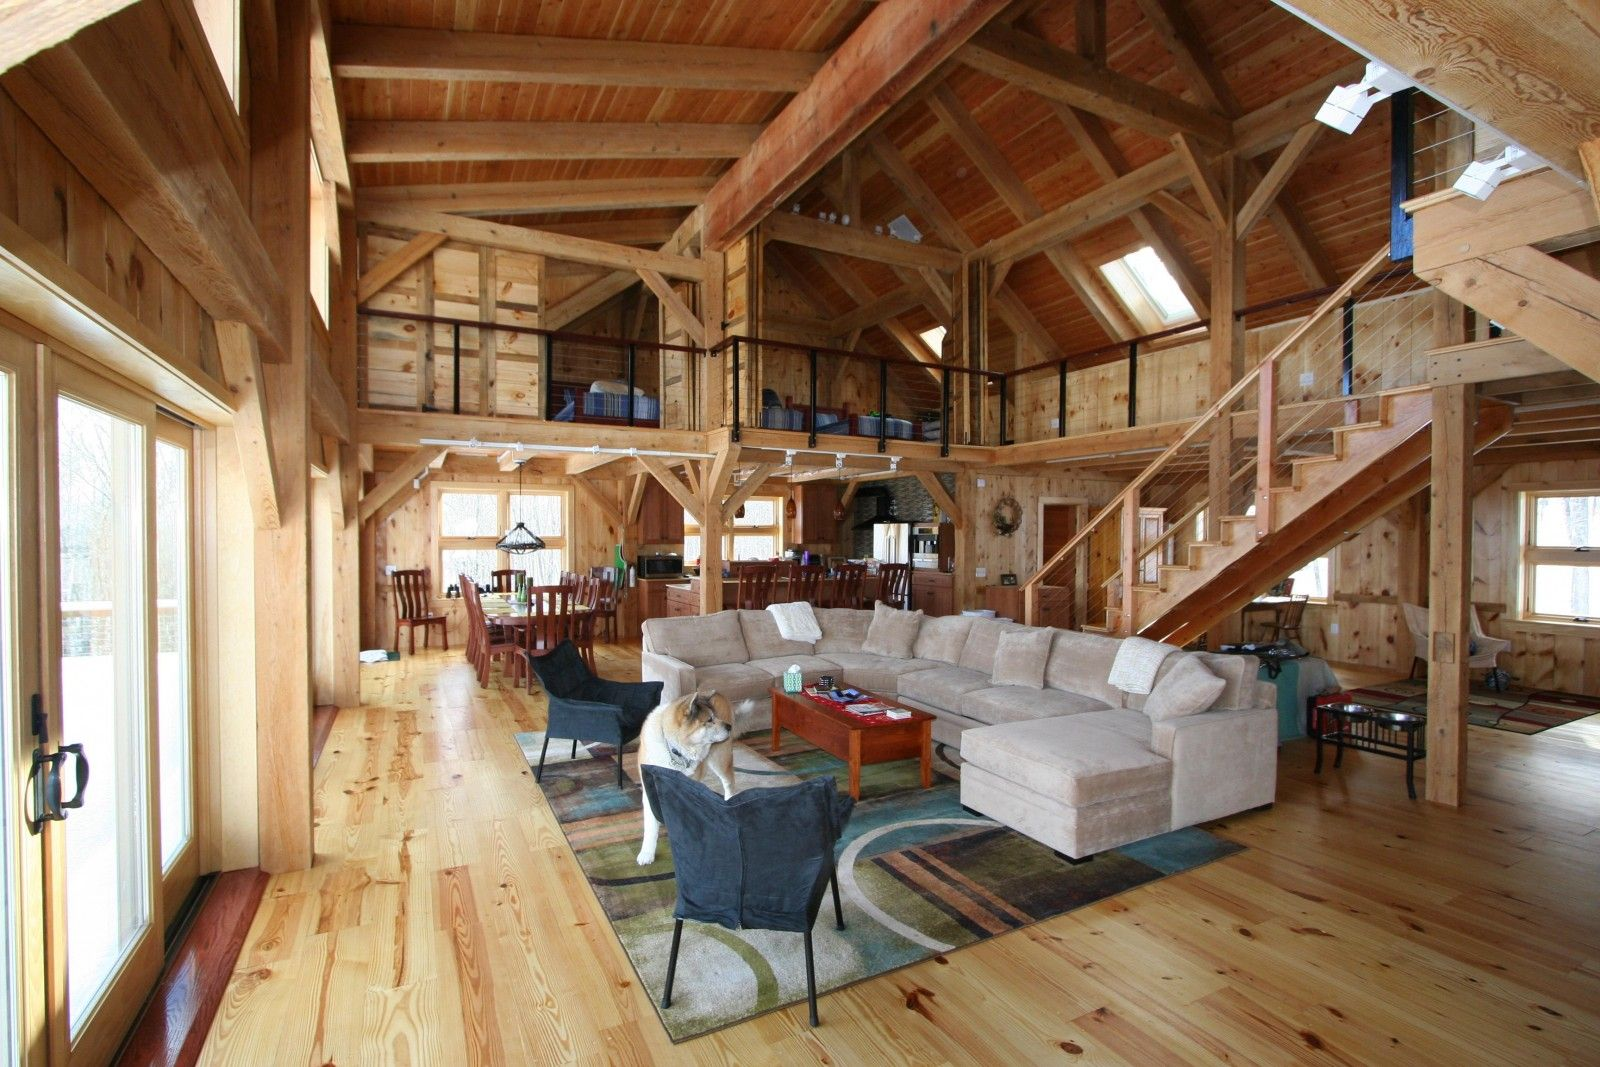 open space and wood timbers mark this lodge interior the beauty